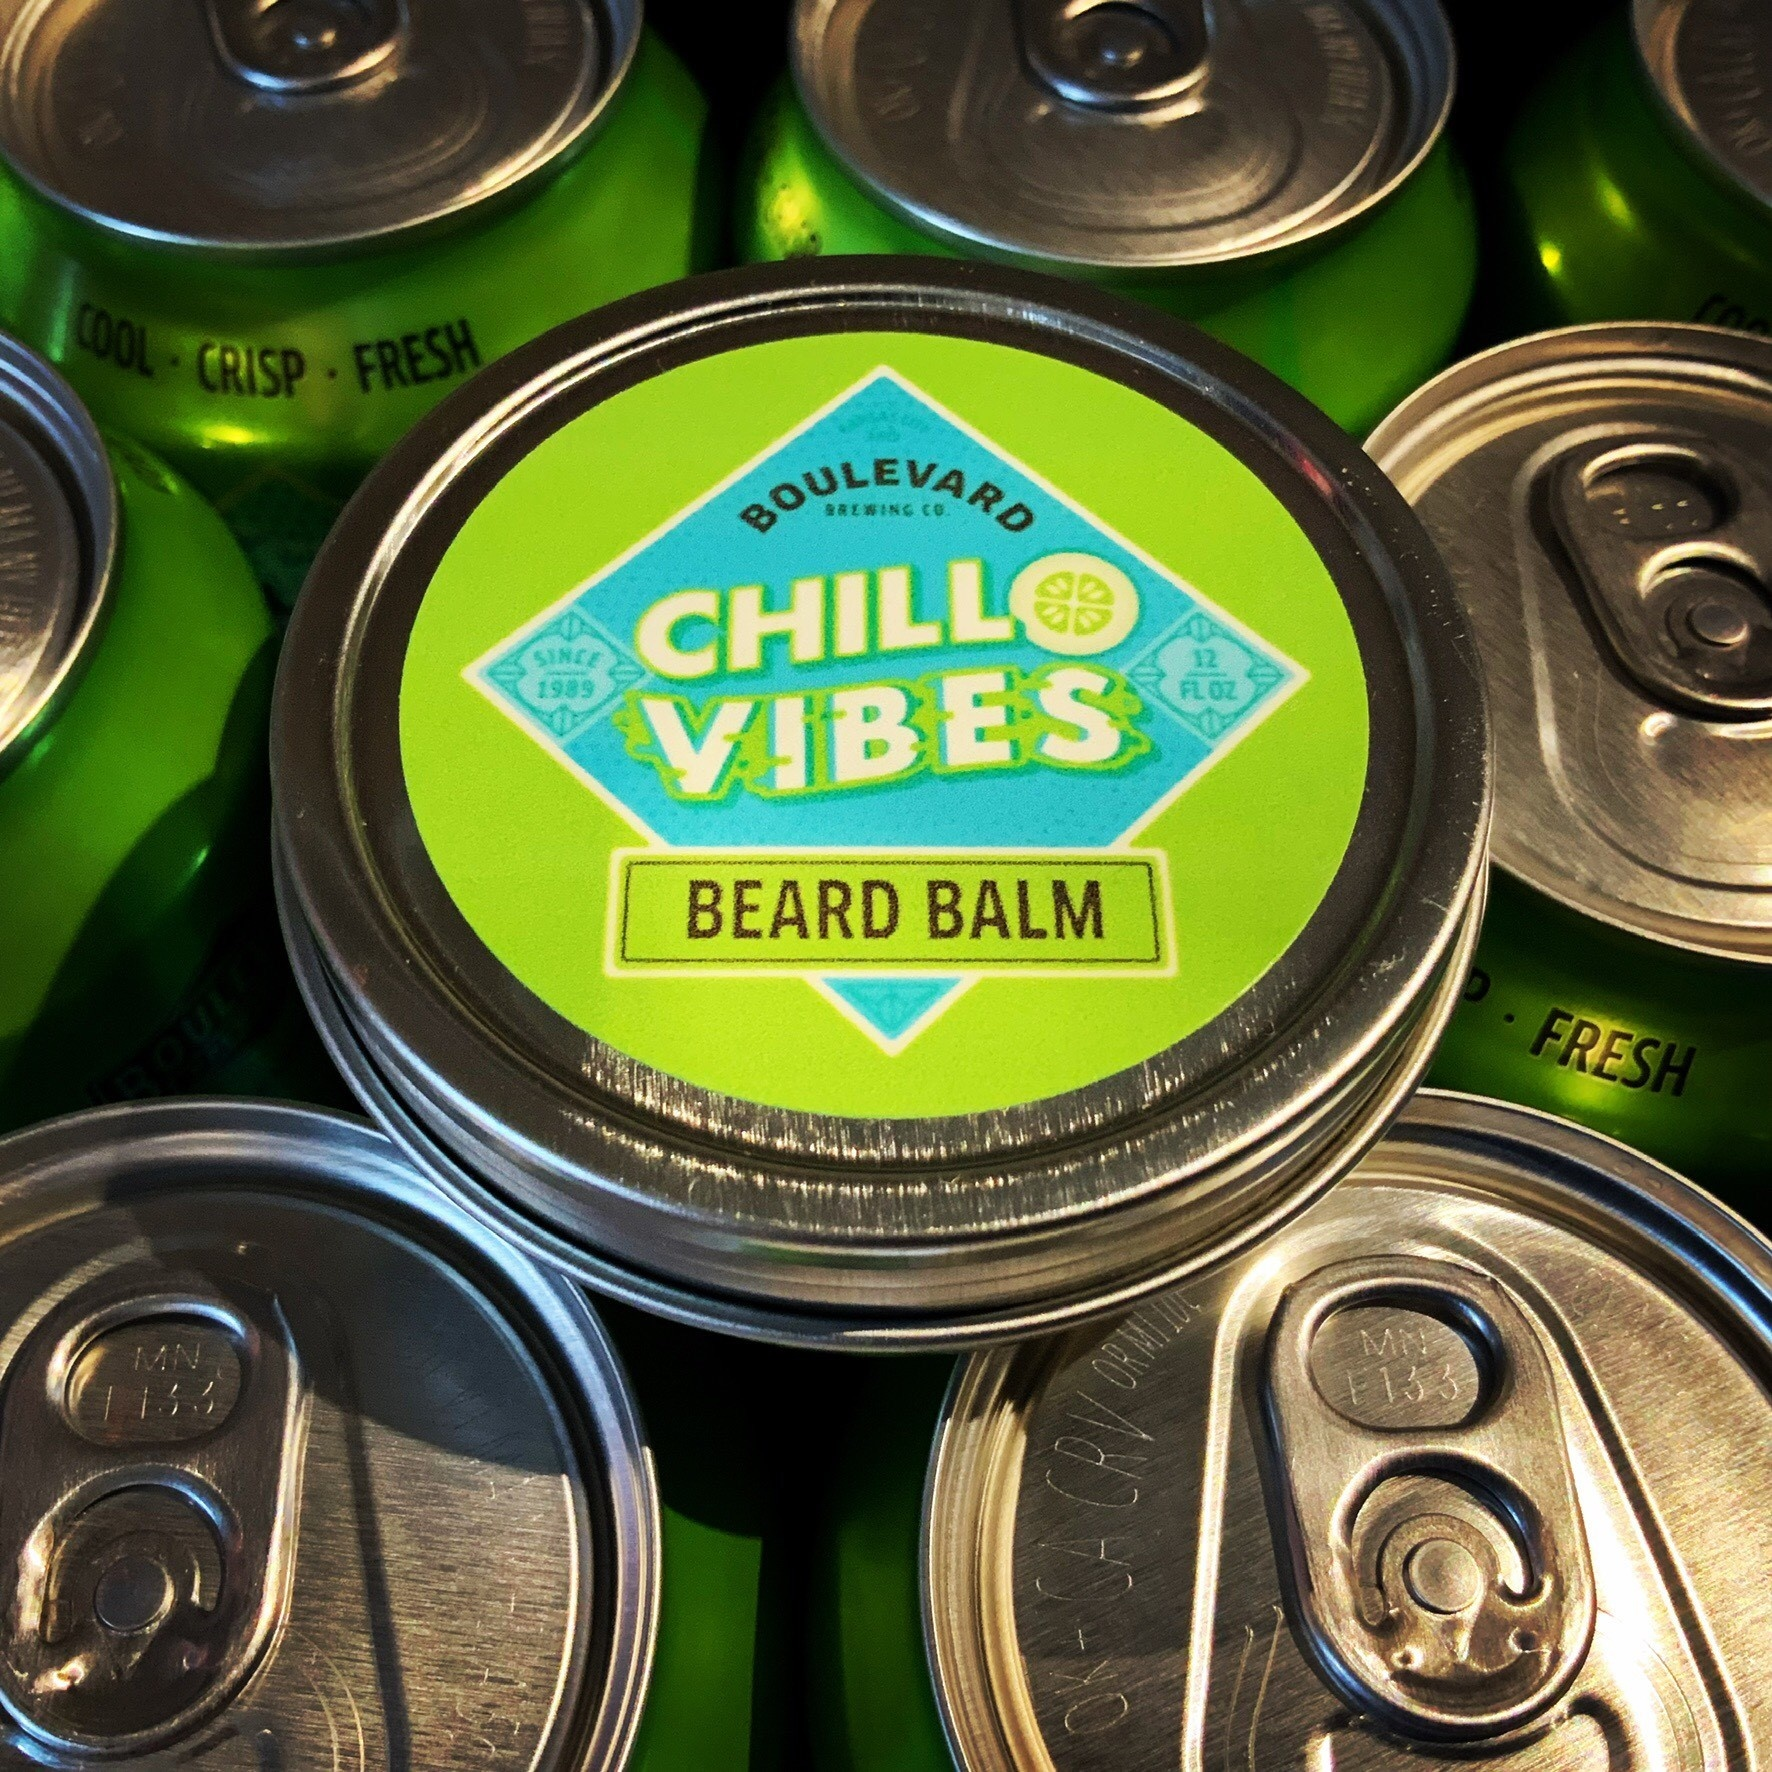 Chill Vibes Beard Balm